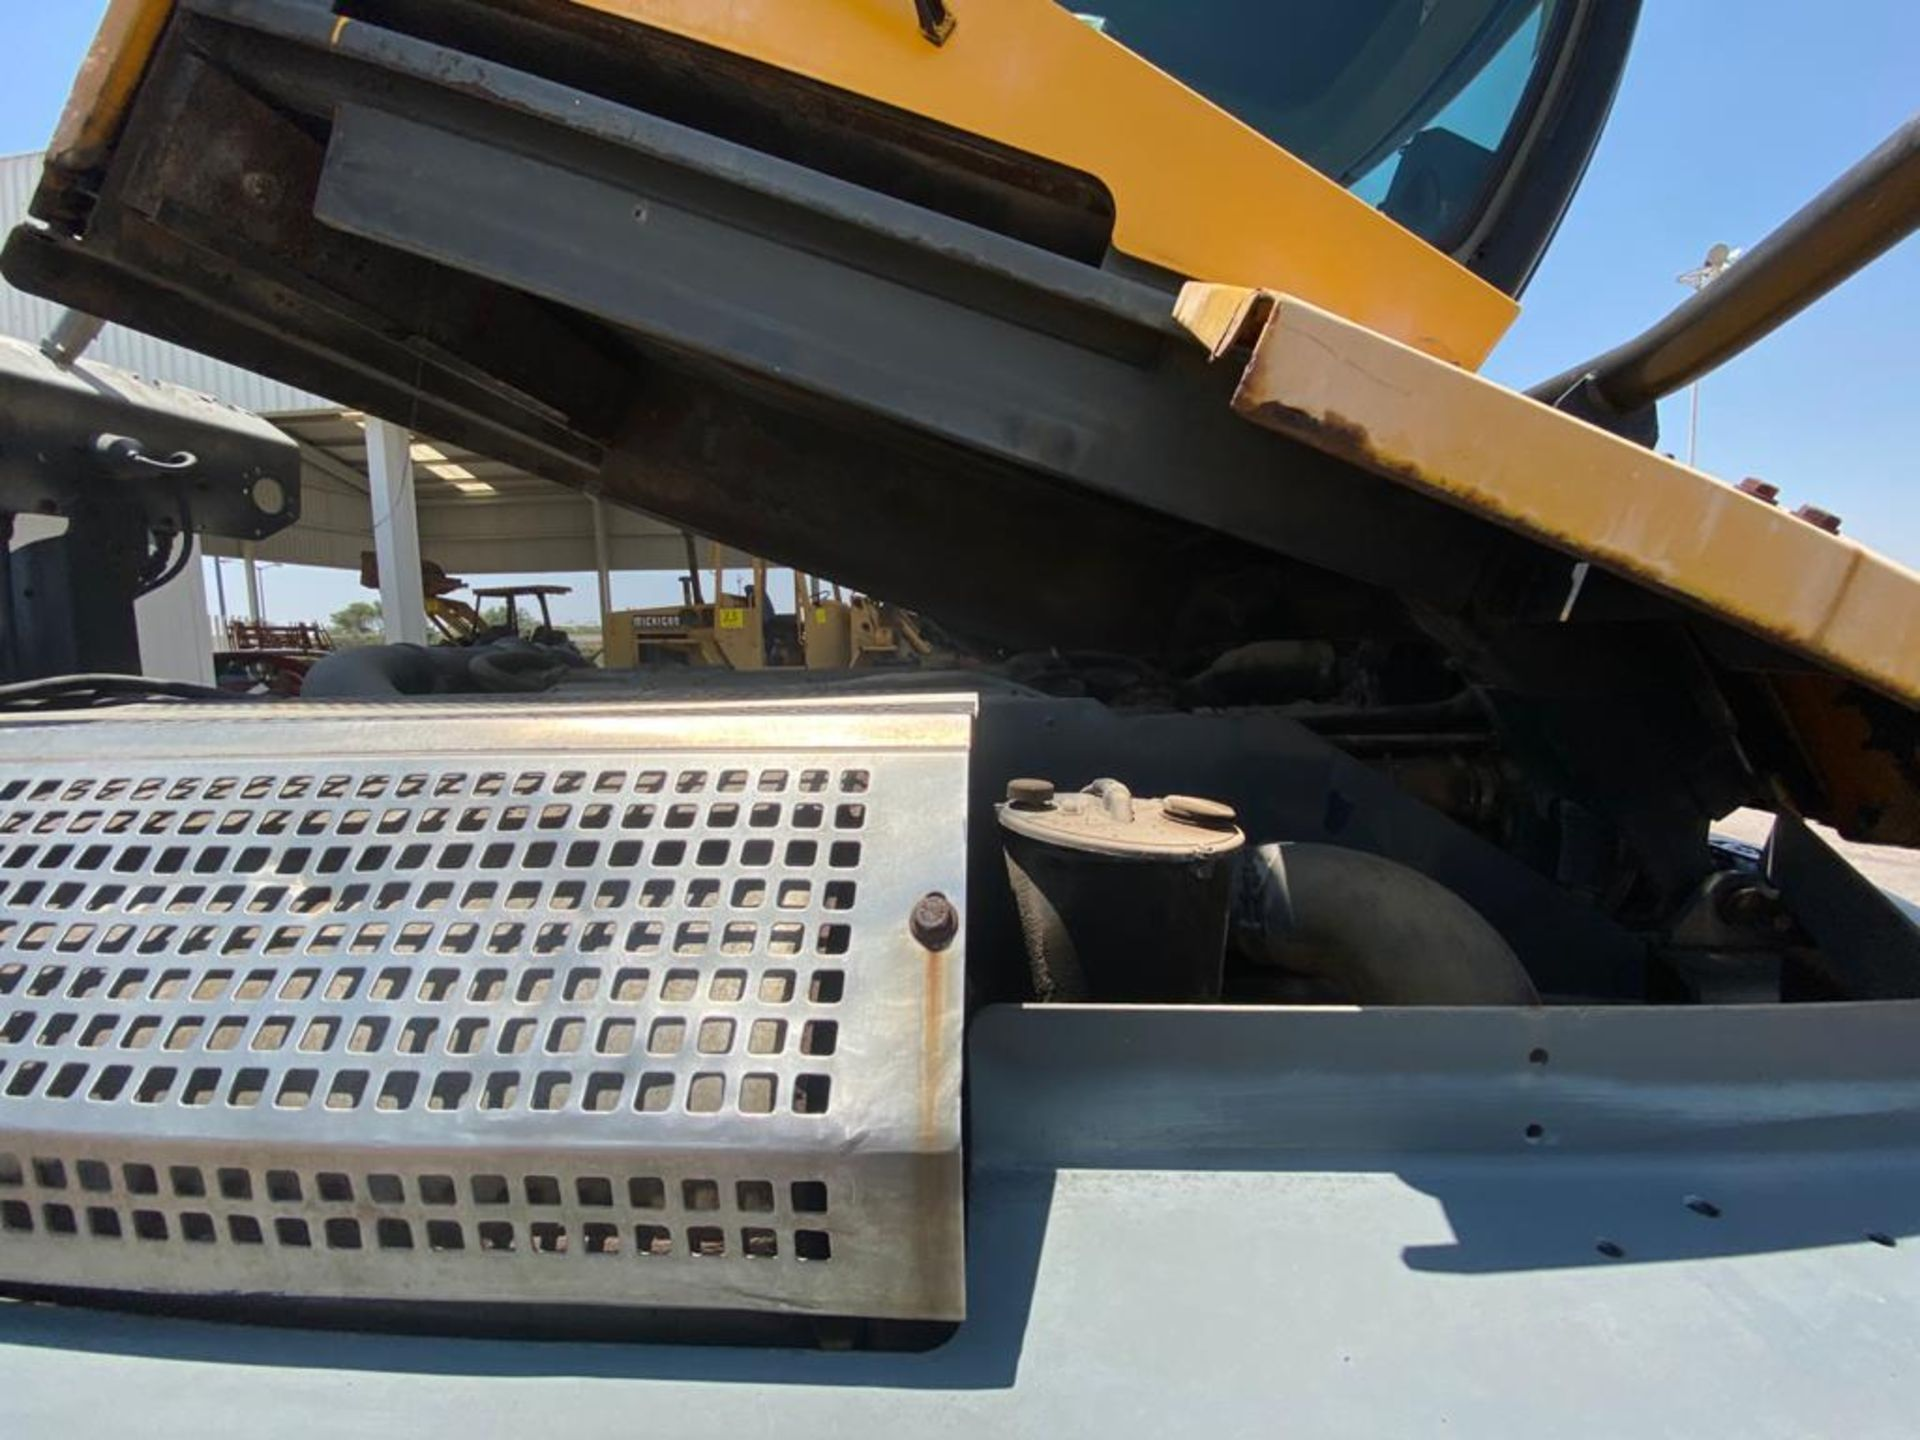 Terberg Capacity 2002 Terminal Tractor, automatic transmission - Image 44 of 57